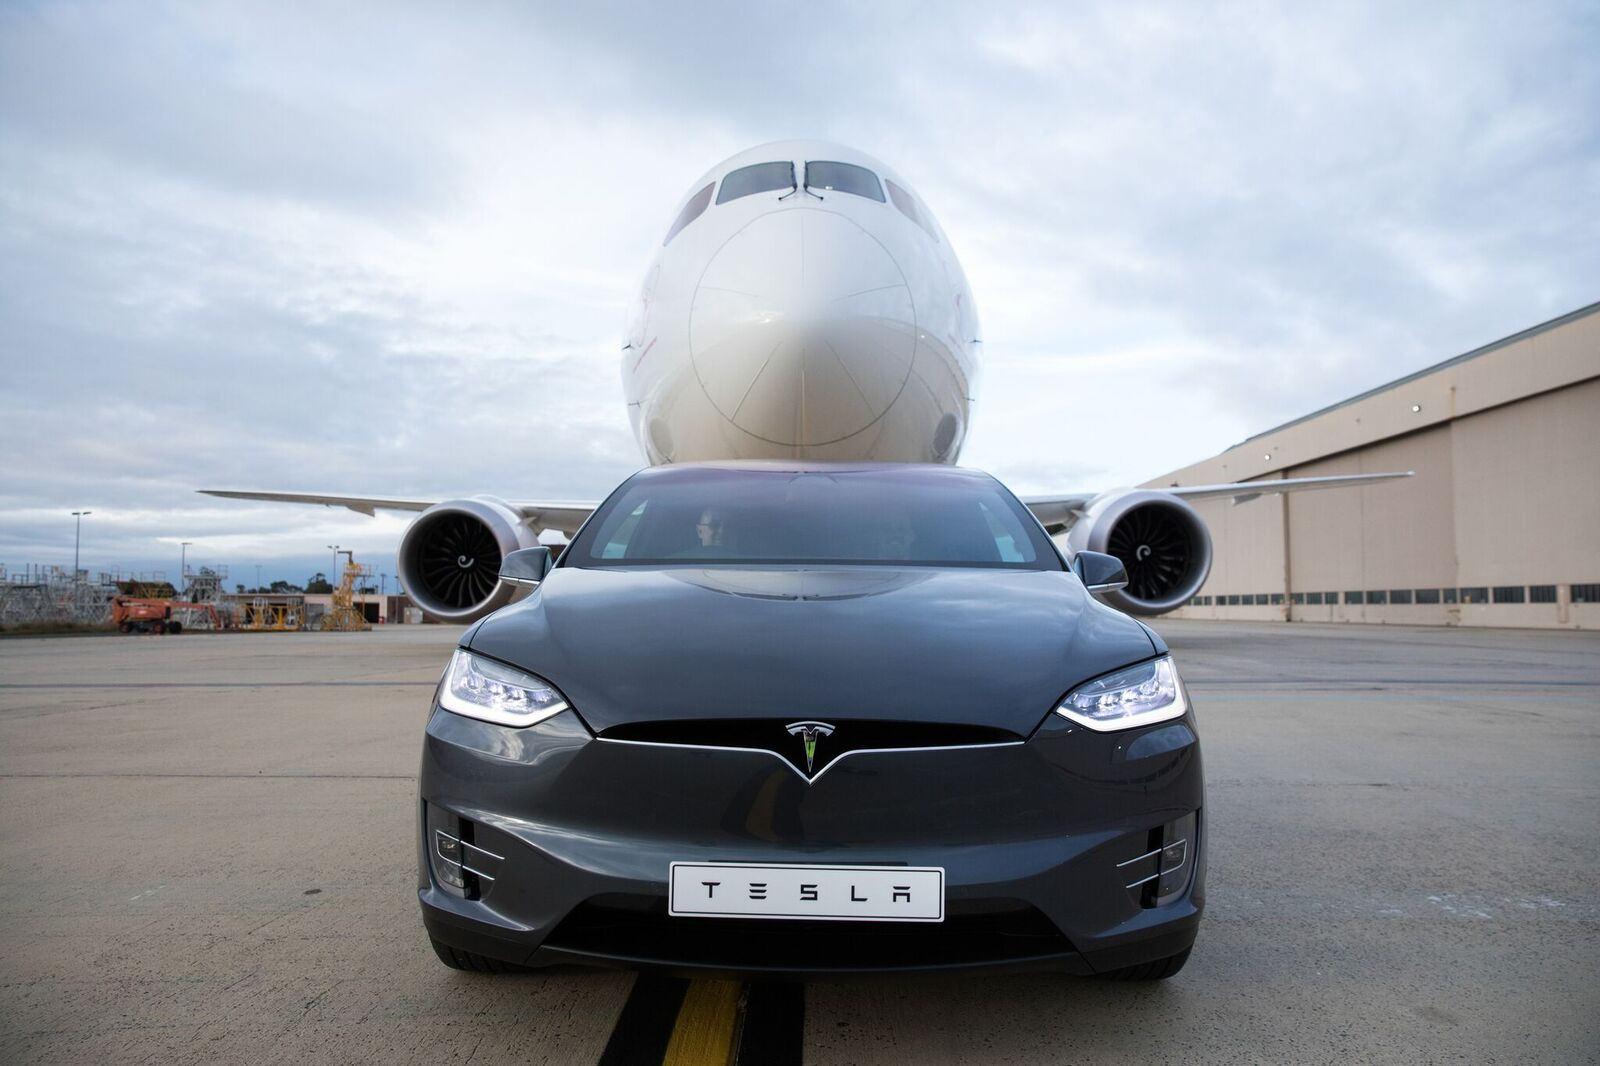 Electric torque on display as Tesla Model X tows a Qantas Dreamliner